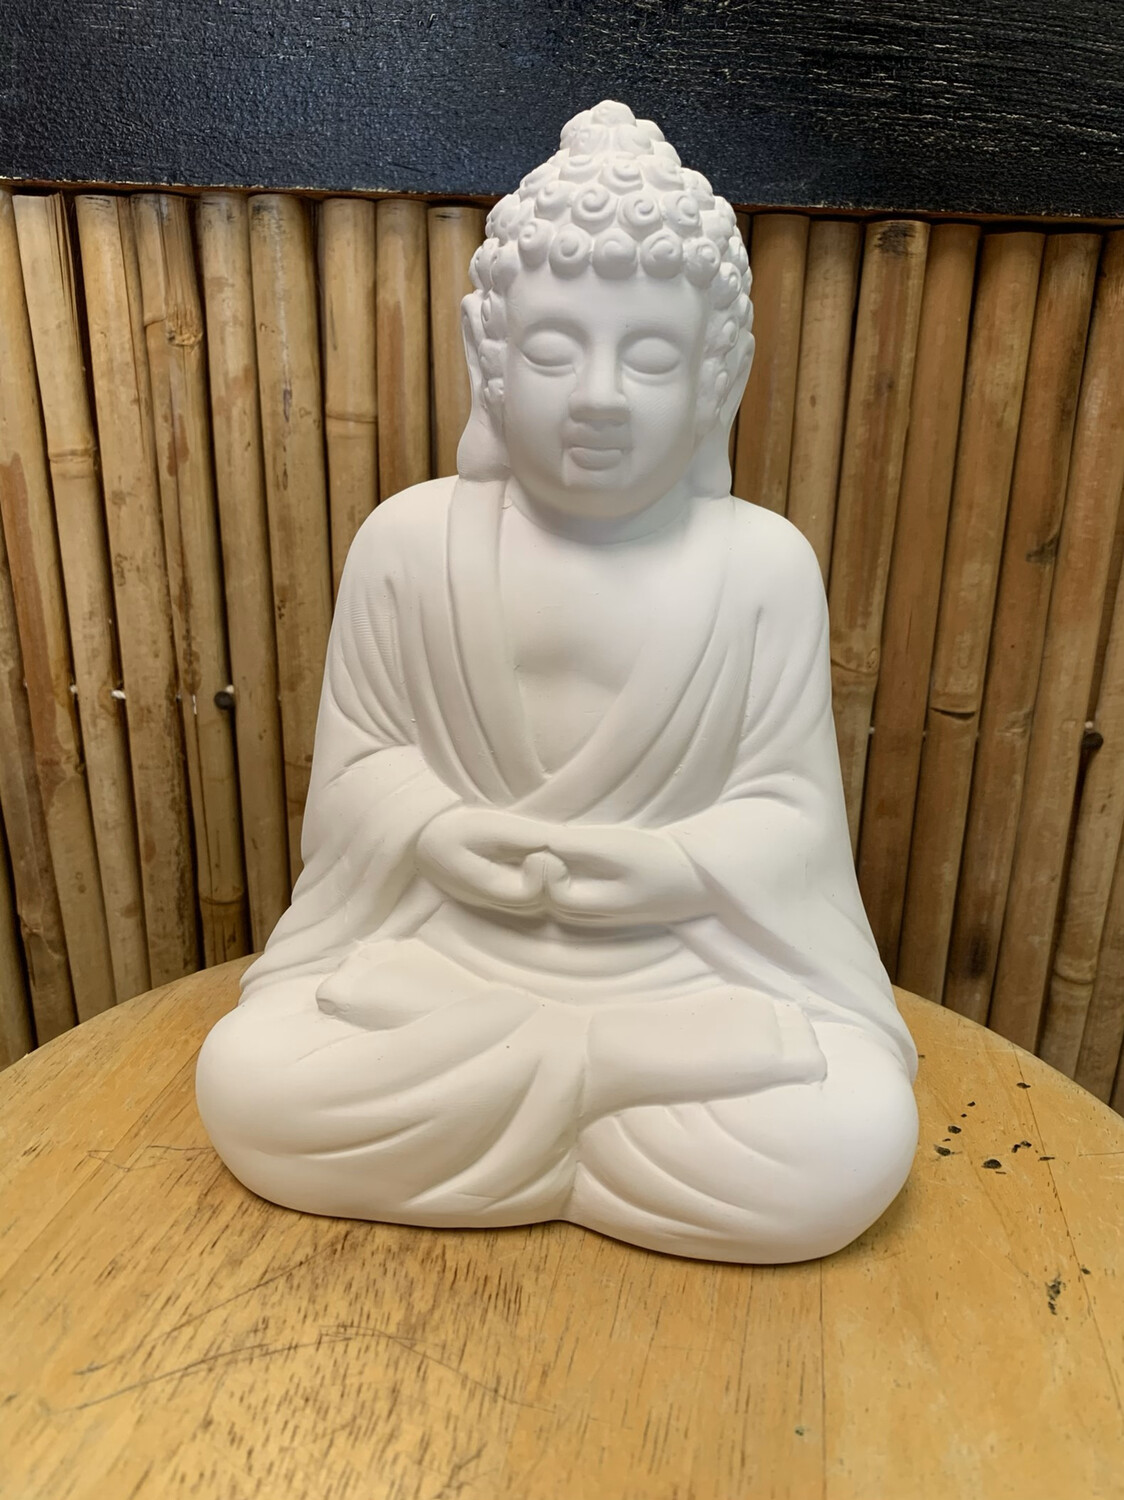 Paint Your Own Pottery - Ceramic Buddha Figurine Painting Kit